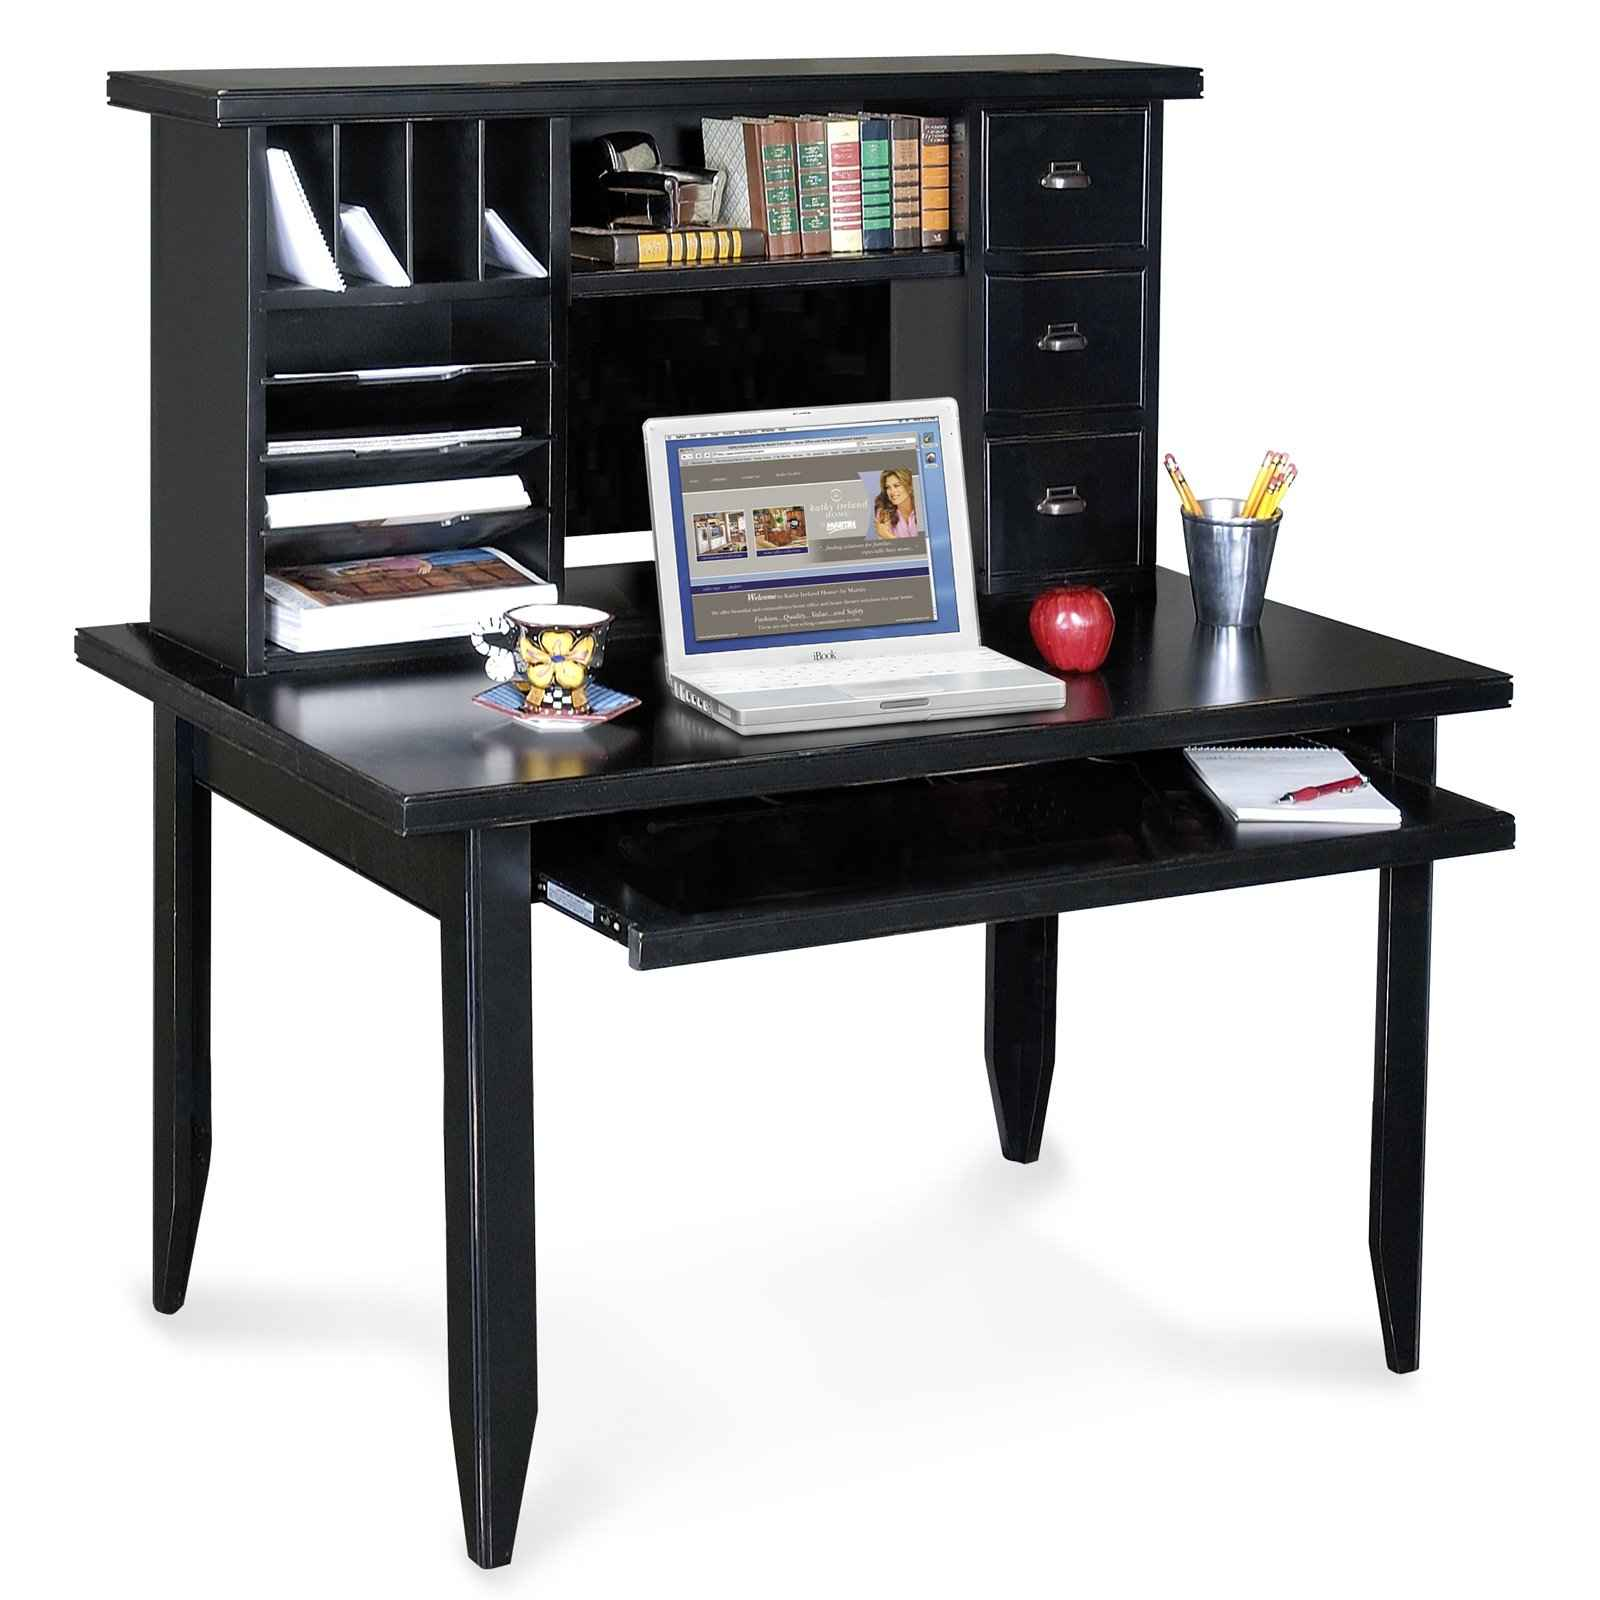 Tribeca black computer desk from Kathy Ireland